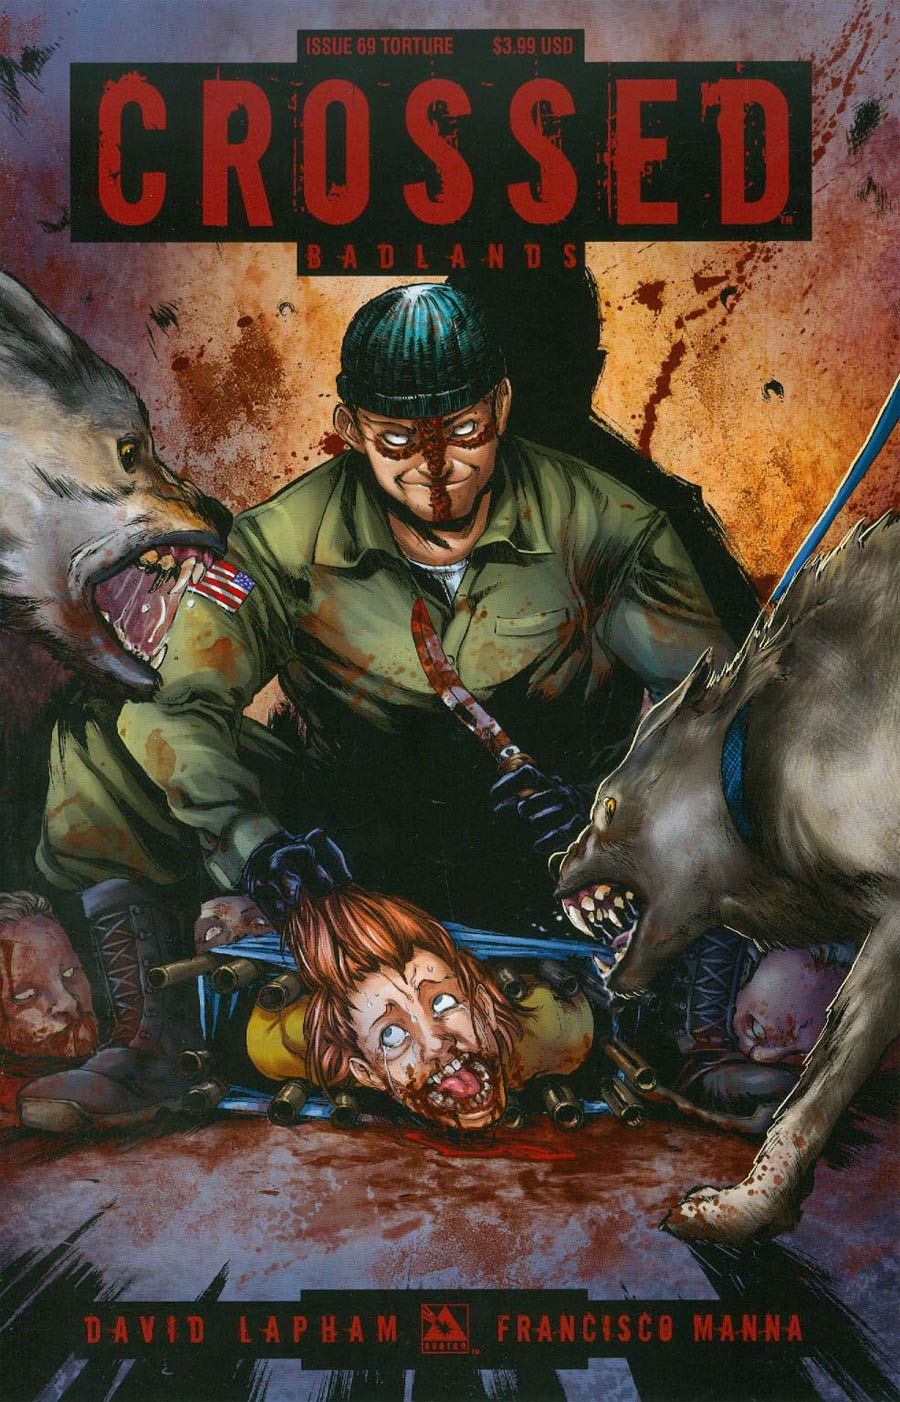 Crossed Badlands #69 Cover C Torture Cover